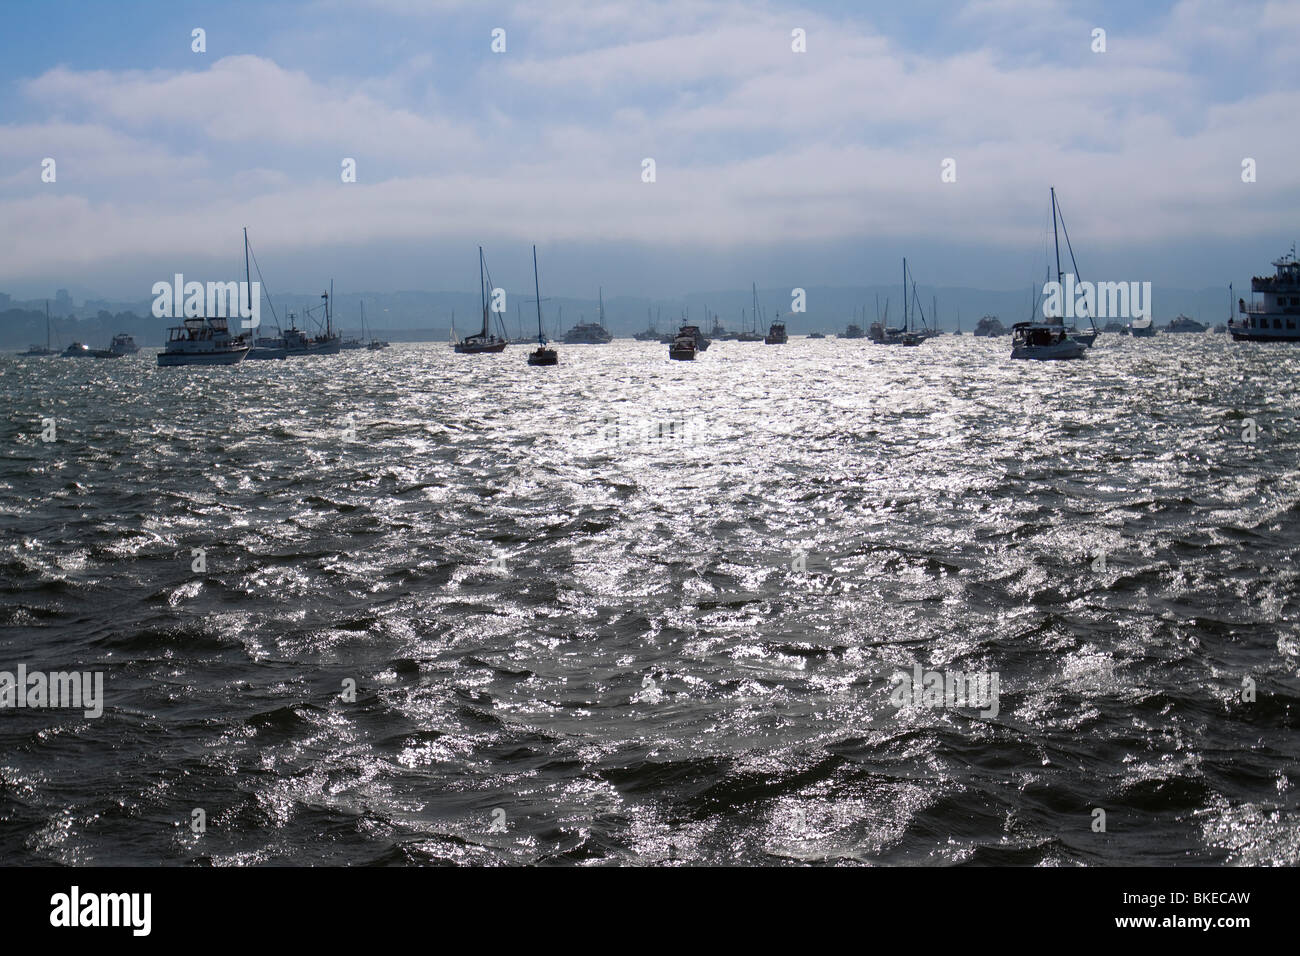 Many boats bobbing in the distance with sun glaring on the water on San Francisco Bay in California - Stock Image